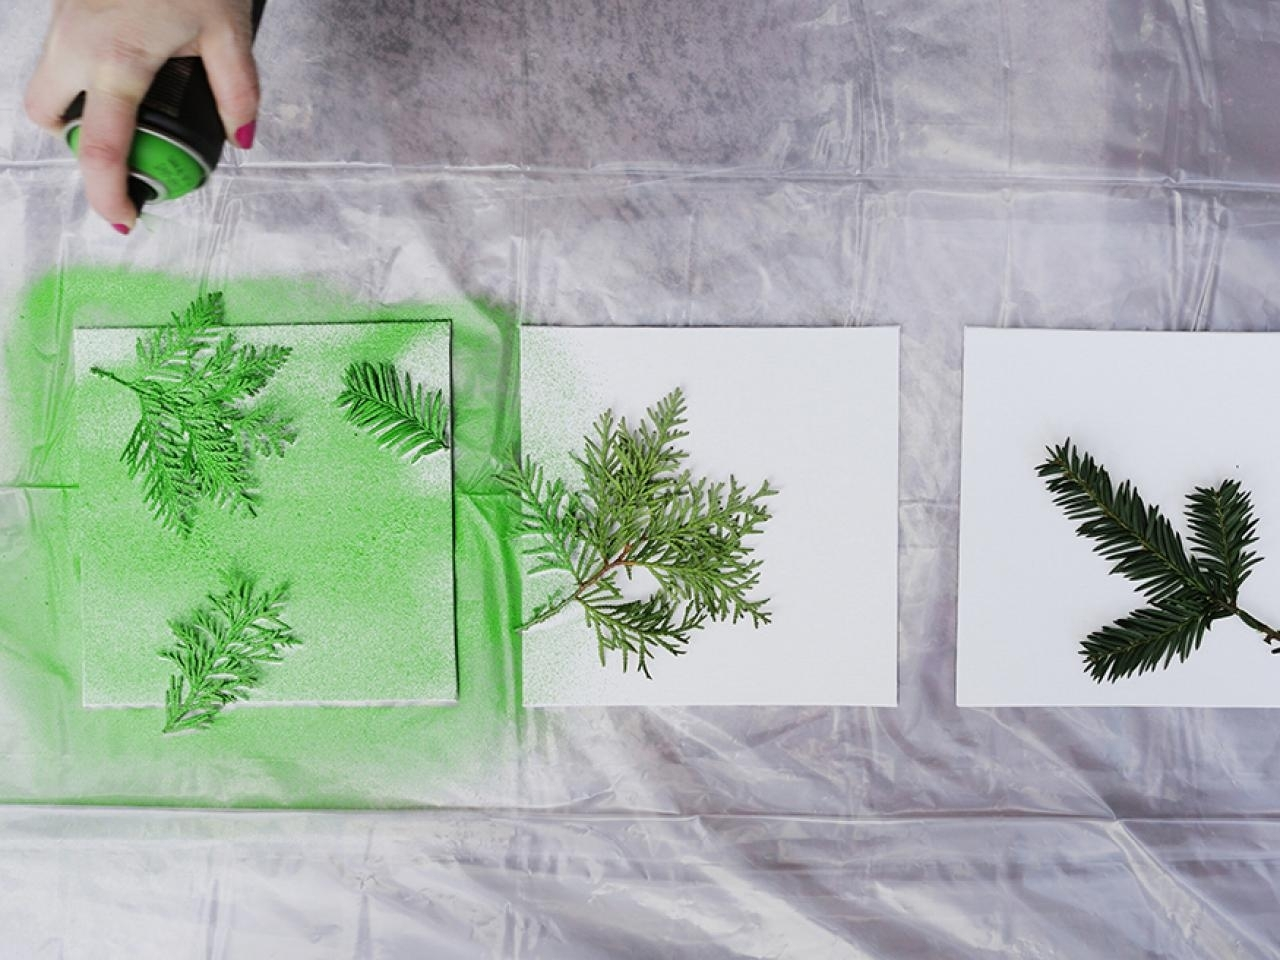 Turn Leaves And Foliage Into Diy Canvas Wall Art | Hgtv Throughout 2017 Leaves Canvas Wall Art (View 2 of 15)